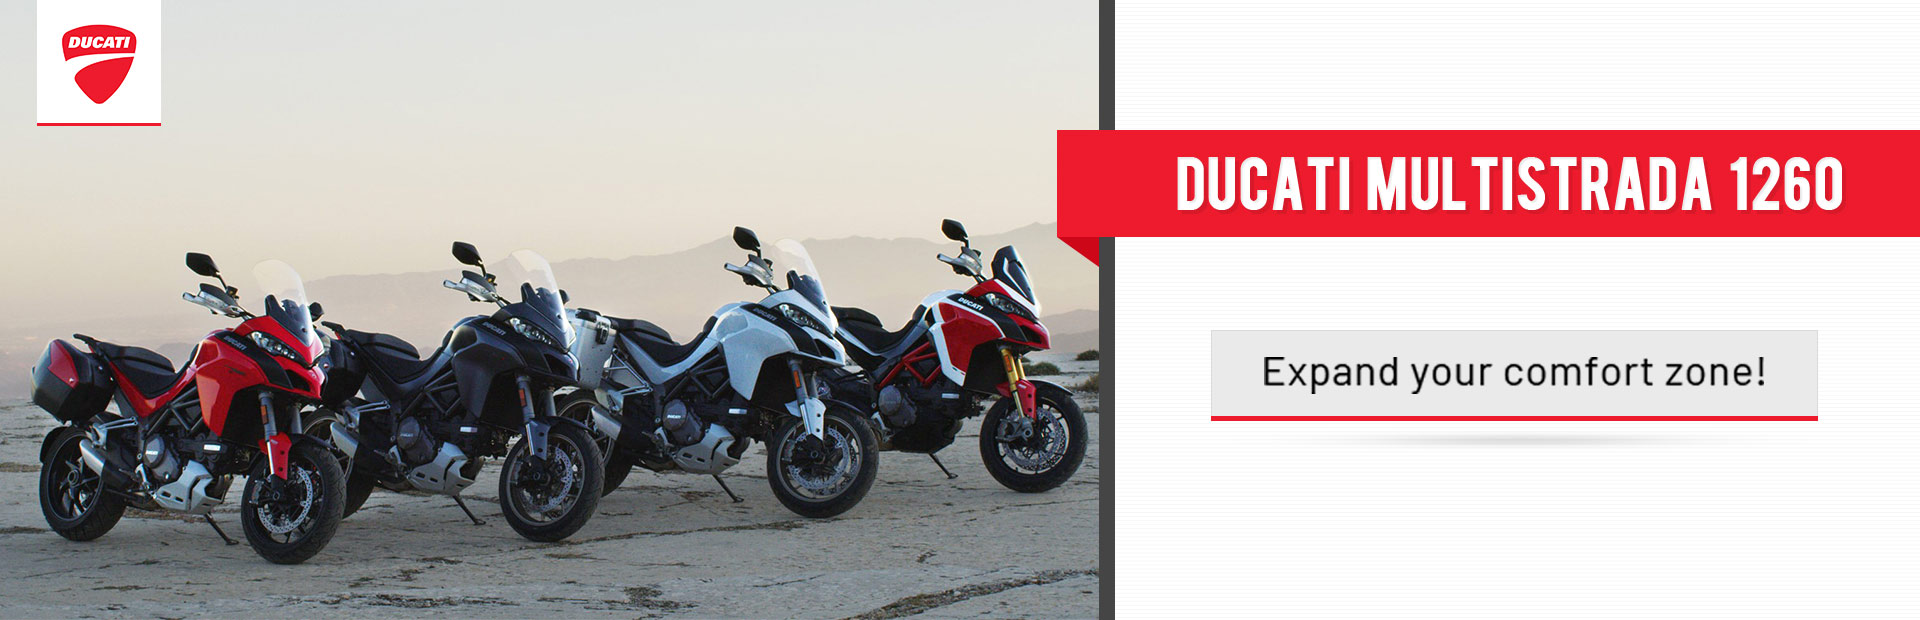 Ducati Multistrada 1260. Expand your comfort zone. Click here to find out more!